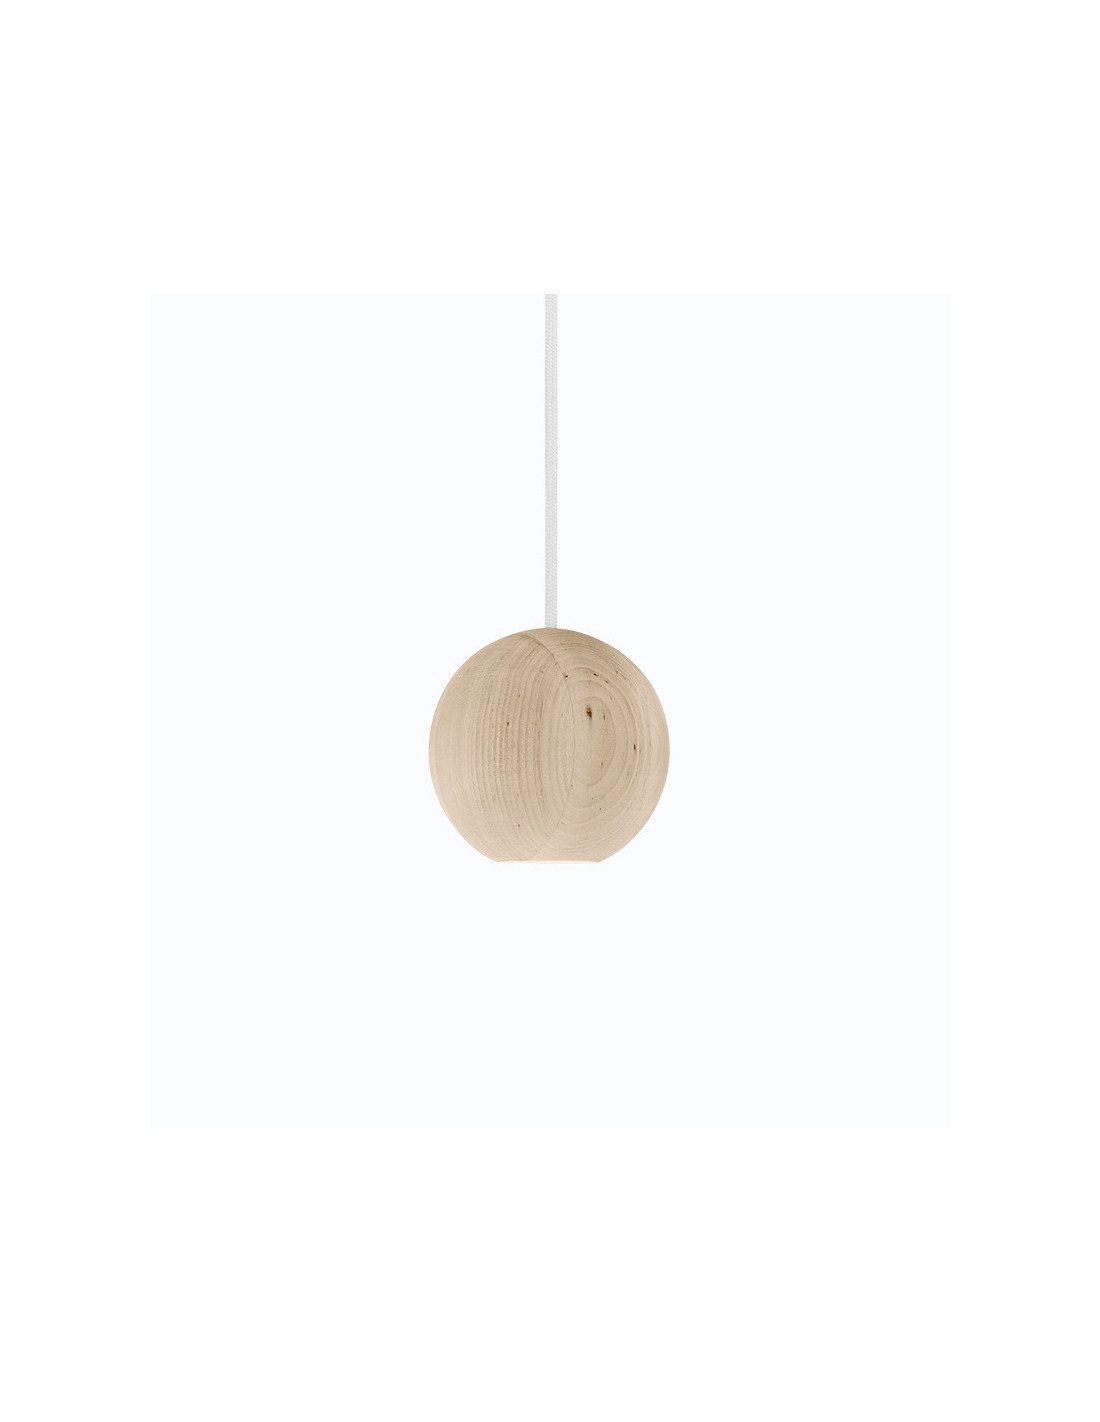 suspension led en bois liuku ball au design scandinave otoko. Black Bedroom Furniture Sets. Home Design Ideas